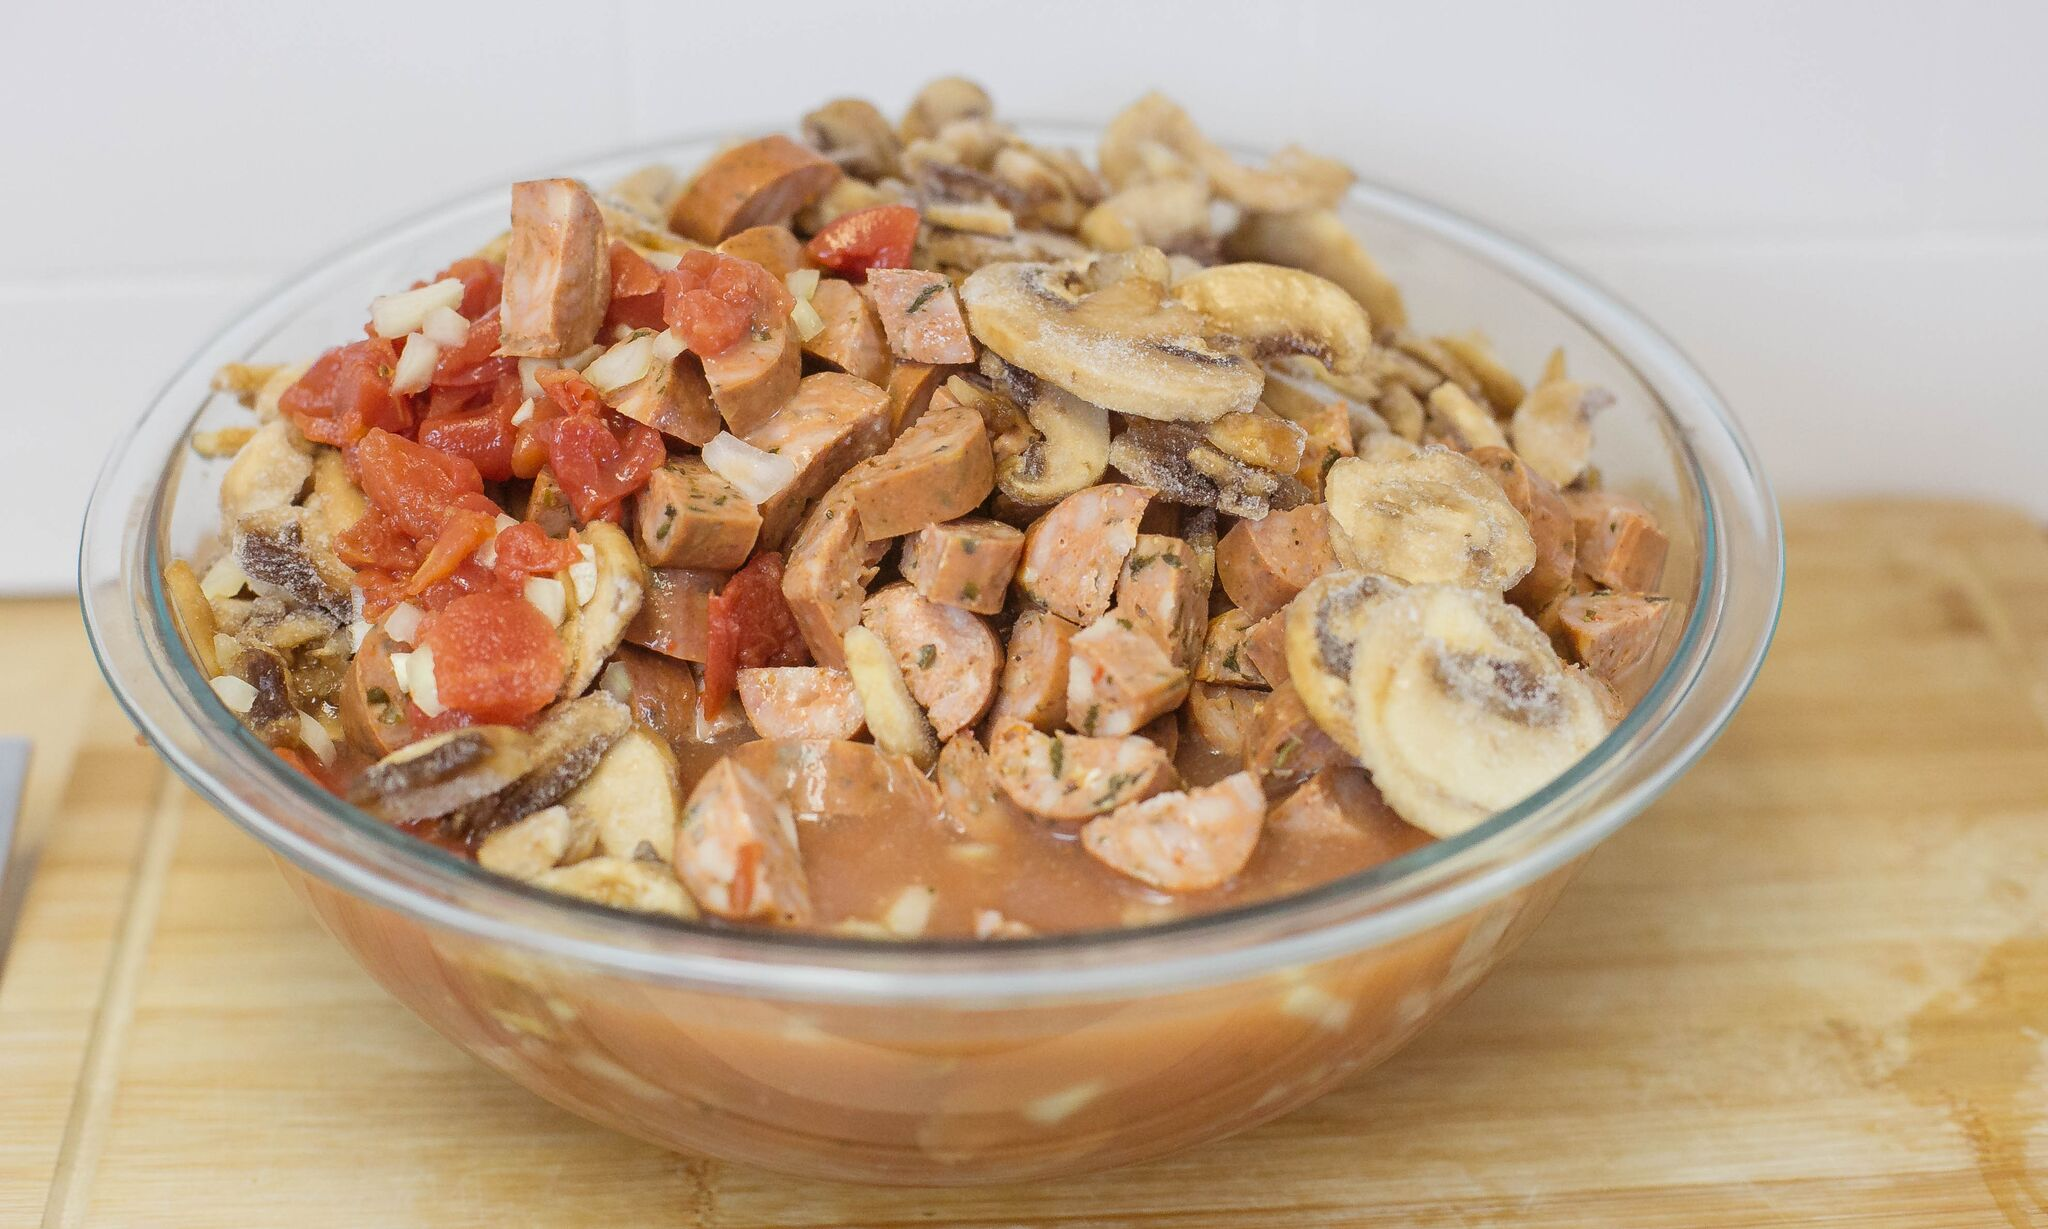 In large bowl, mix together diced tomatoes, sliced mushrooms, onion, garlic, sausage and chicken stock.